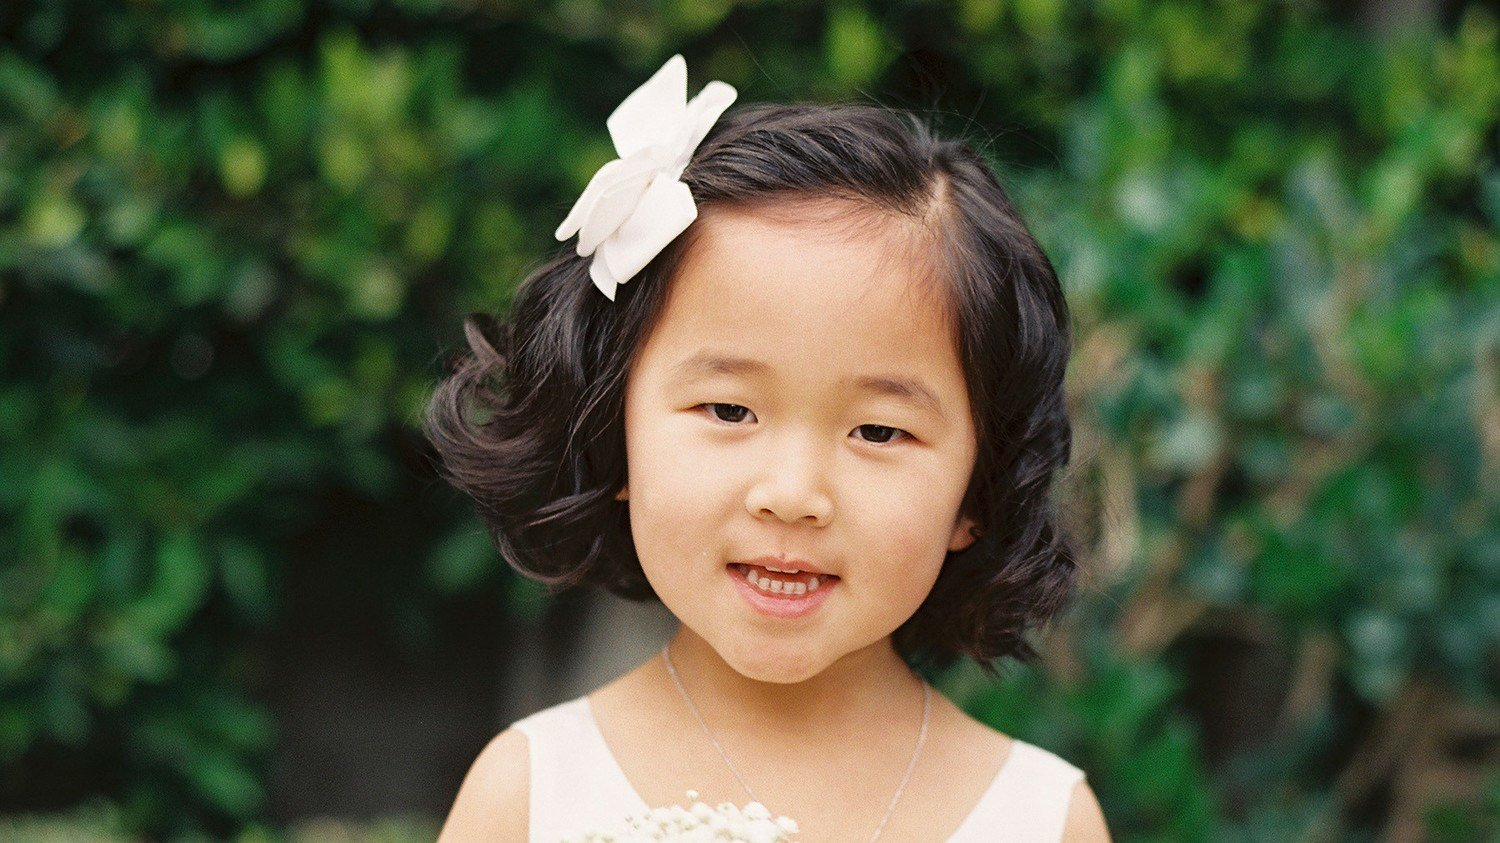 The Best Adorable Hairstyle Ideas For Your Flower Girls Martha Stewart Weddings Pictures